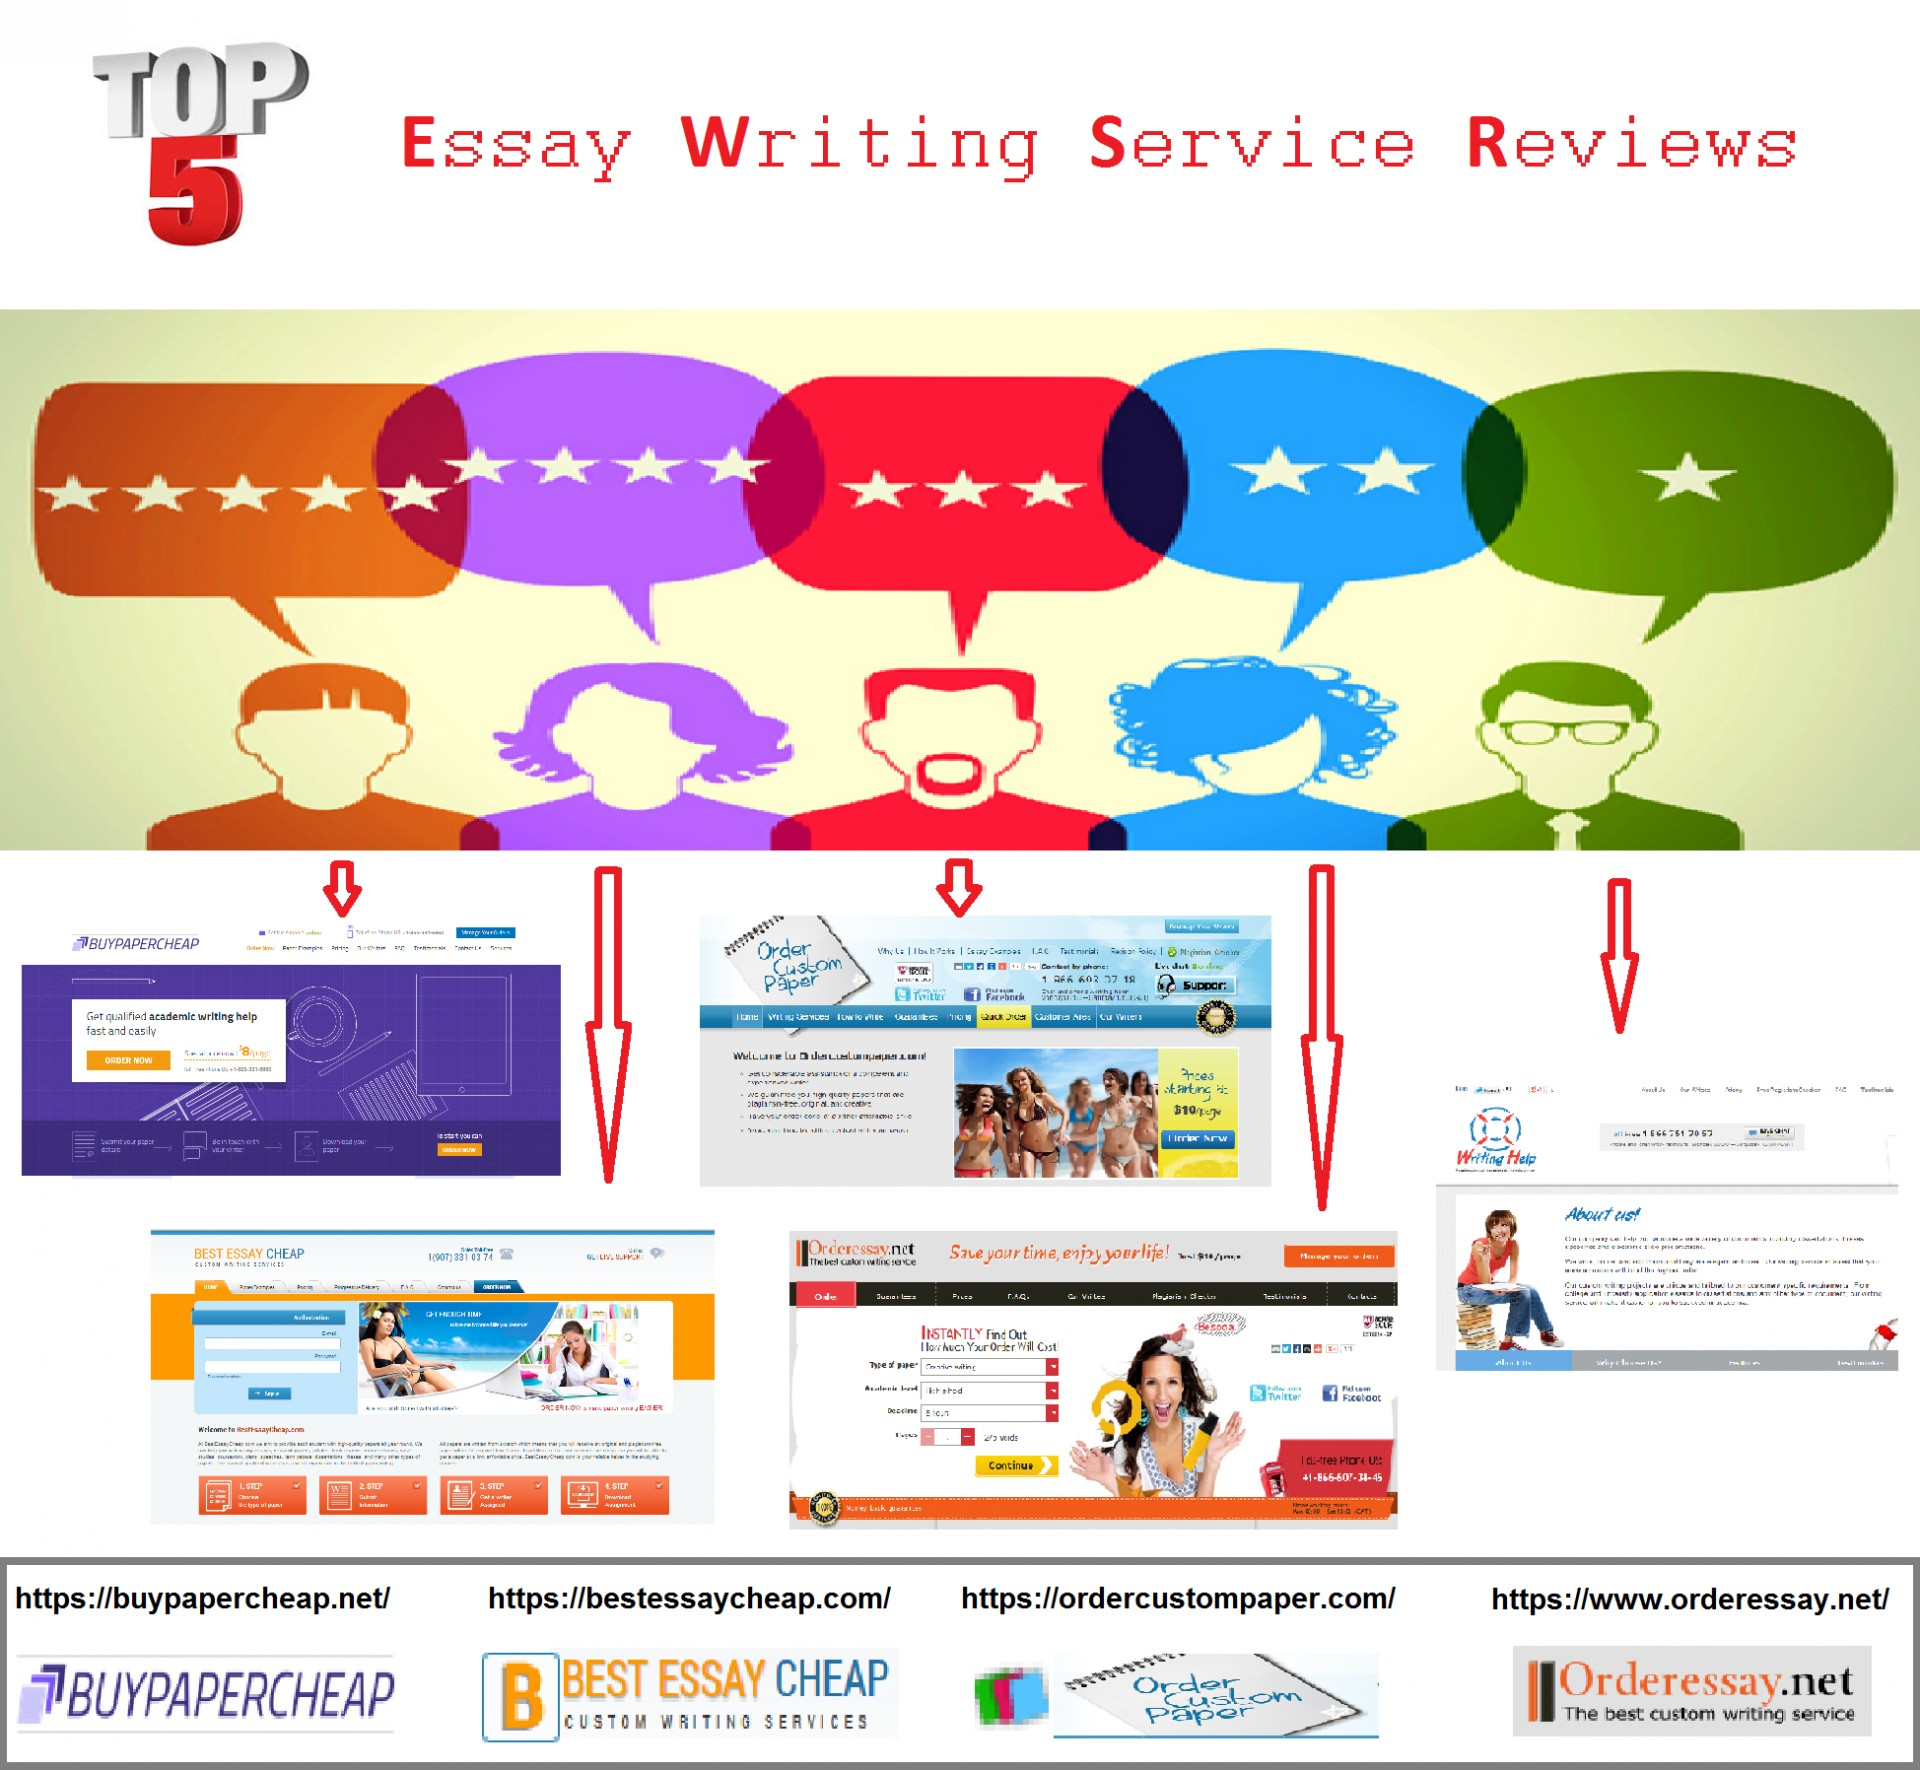 001 Best Essay Writing Service Review Pros Of Services Reviews Top Uk Singular Reddit 1920